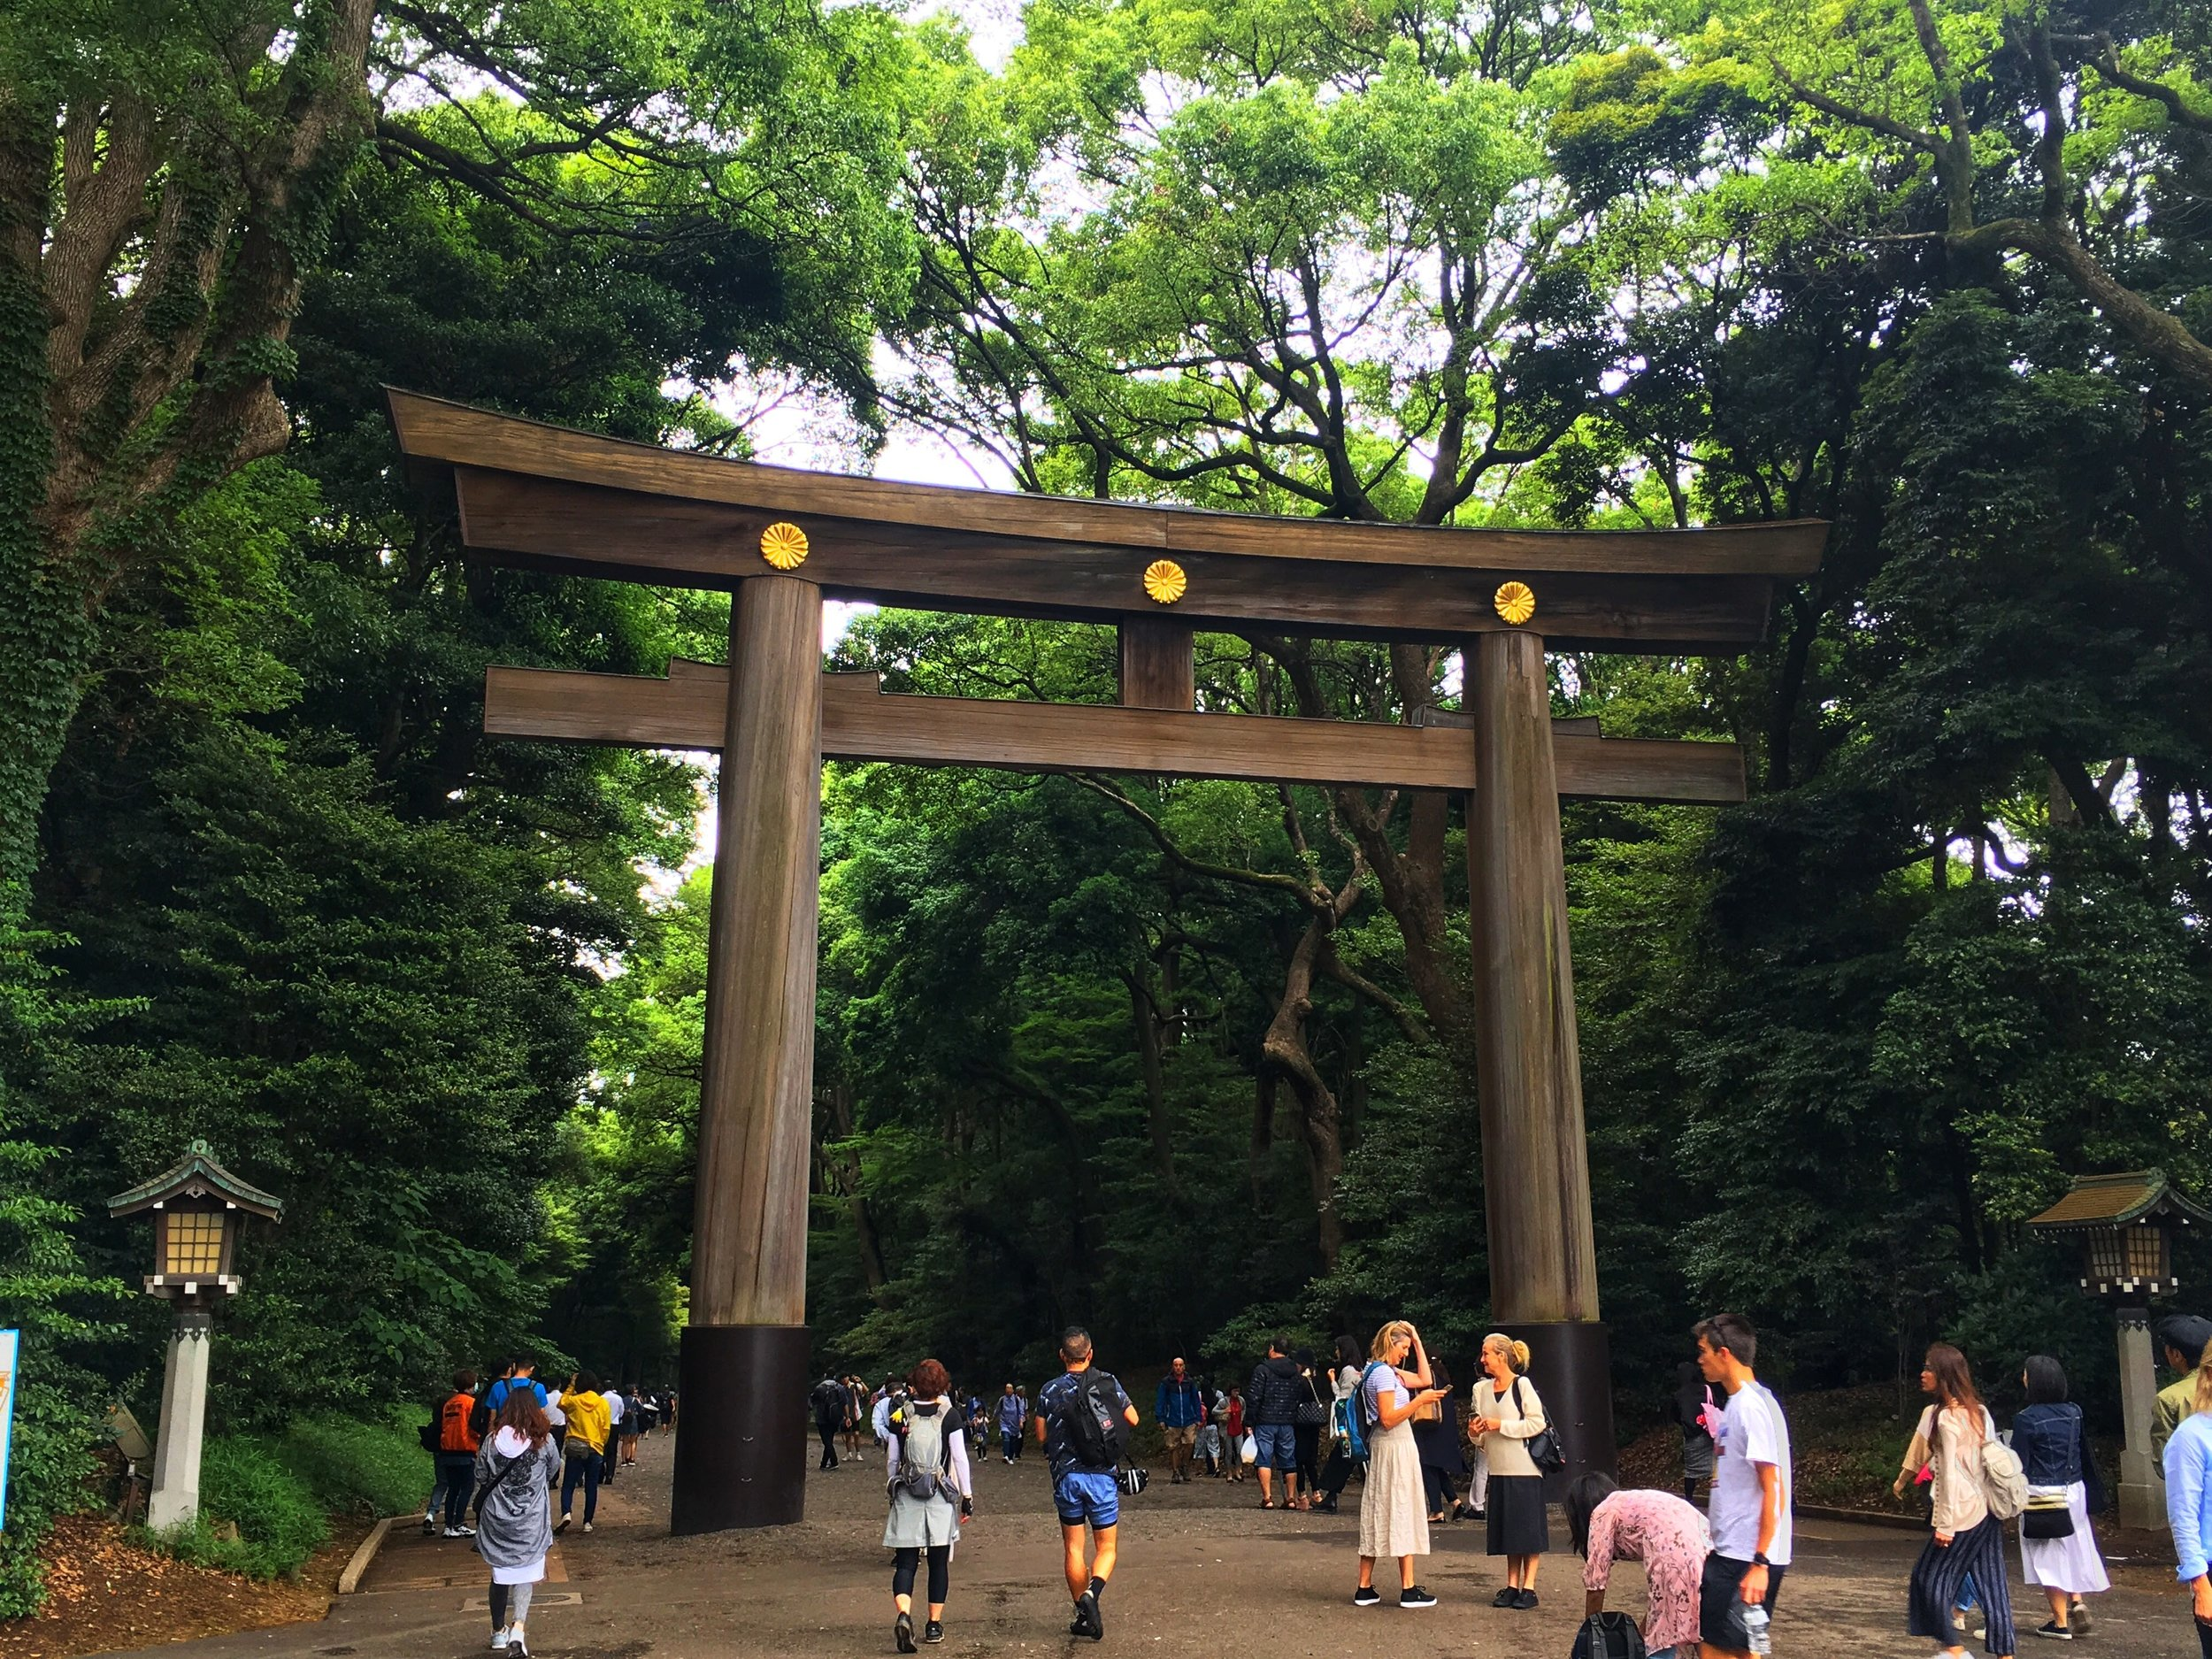 the entrance to the Meiji Imperial Shrine in Tokyo, Japan - this shrine is the location of one of the city's most popular Power Spots